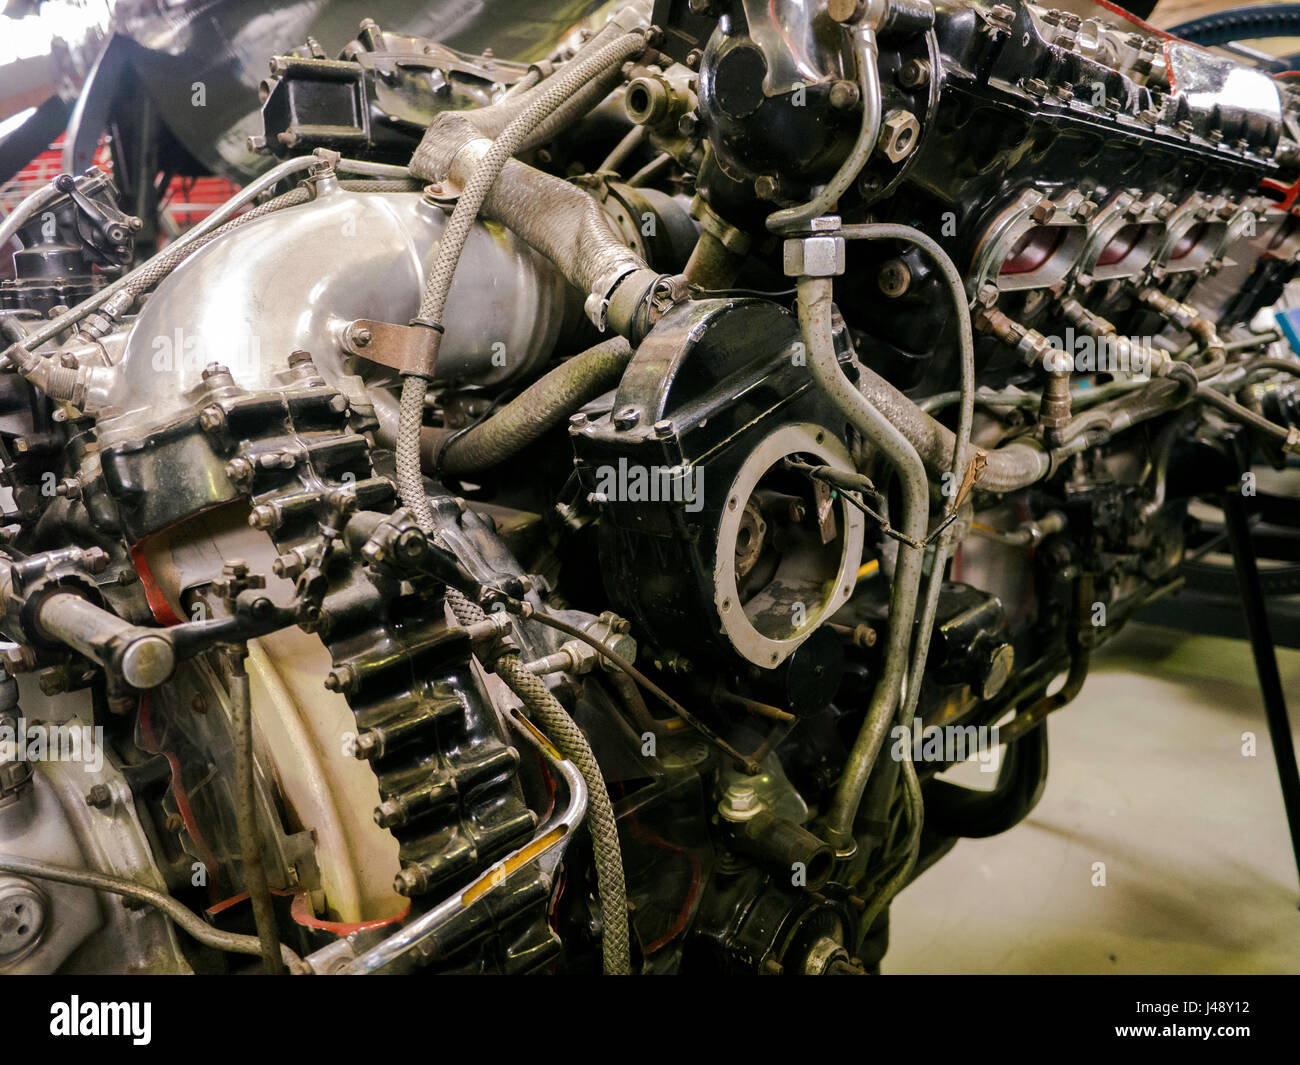 Close up of a Rolls Royce Merlin piston engine - Stock Image